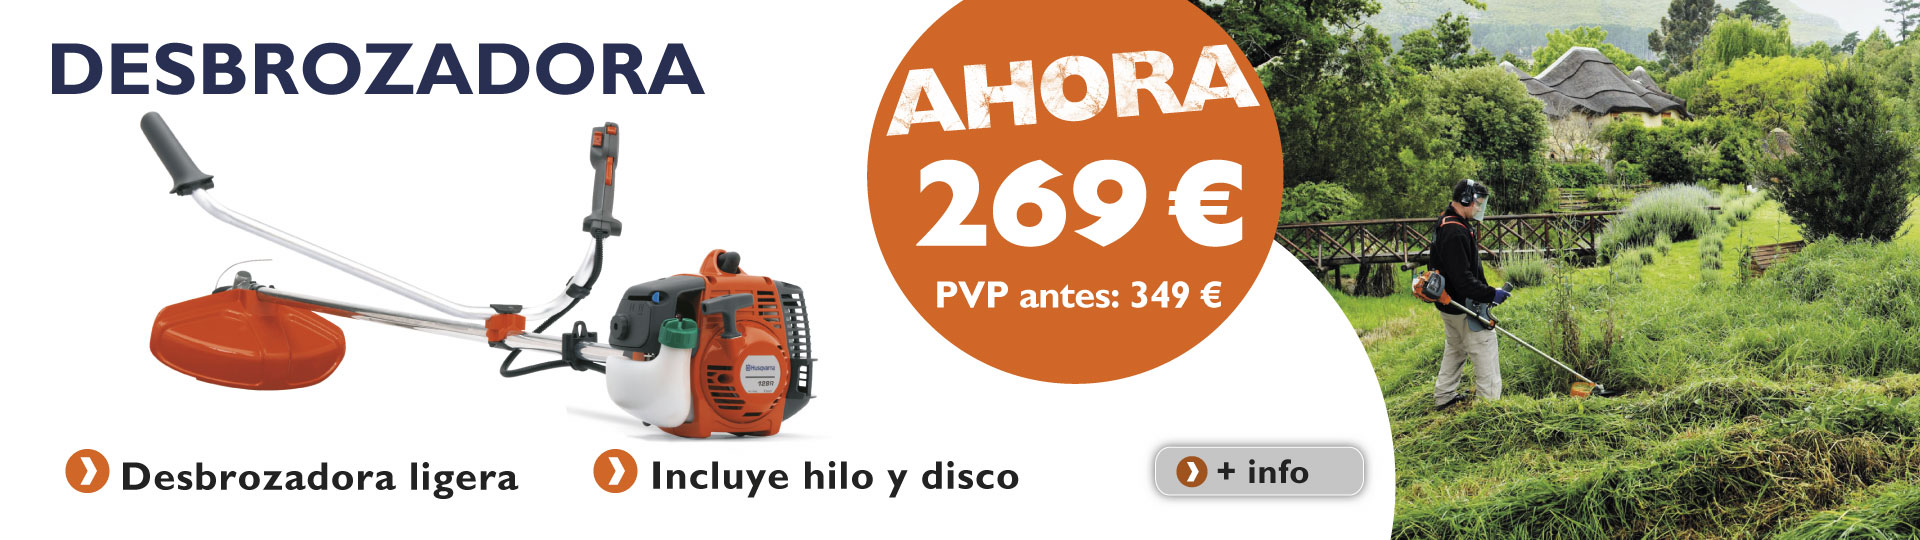 Desbrozadoras Semiprofesionales 48 128R.Html?Utm_Source=Banners%20Web&Utm_Medium=Banner%20Slide%201&Utm_Campaign=Banners%20Web